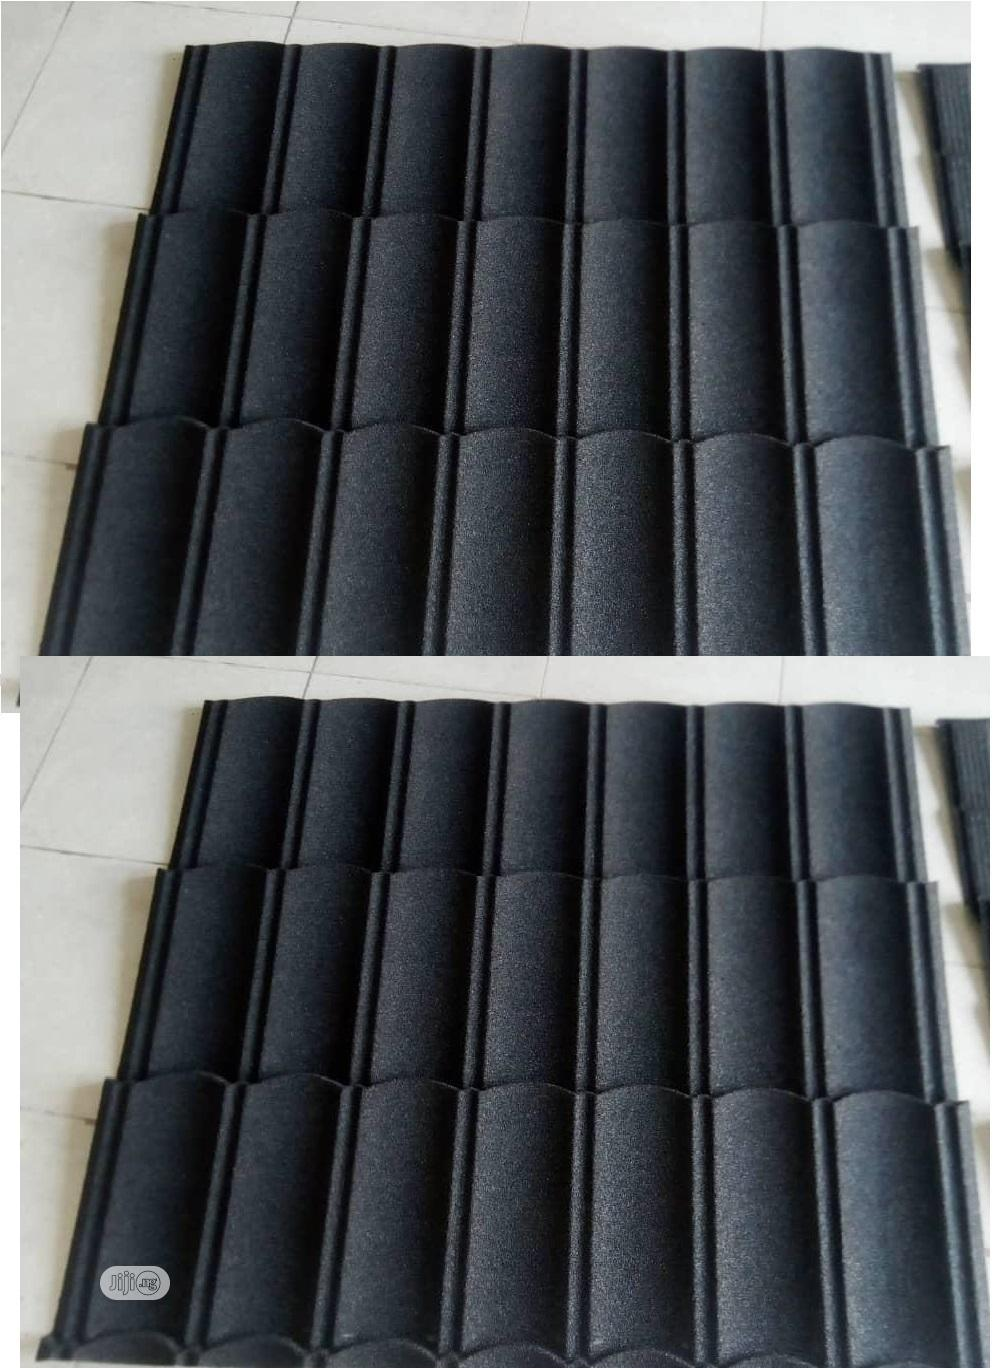 Docherich Solid Coated Roofing Sheet at a Very Good Price